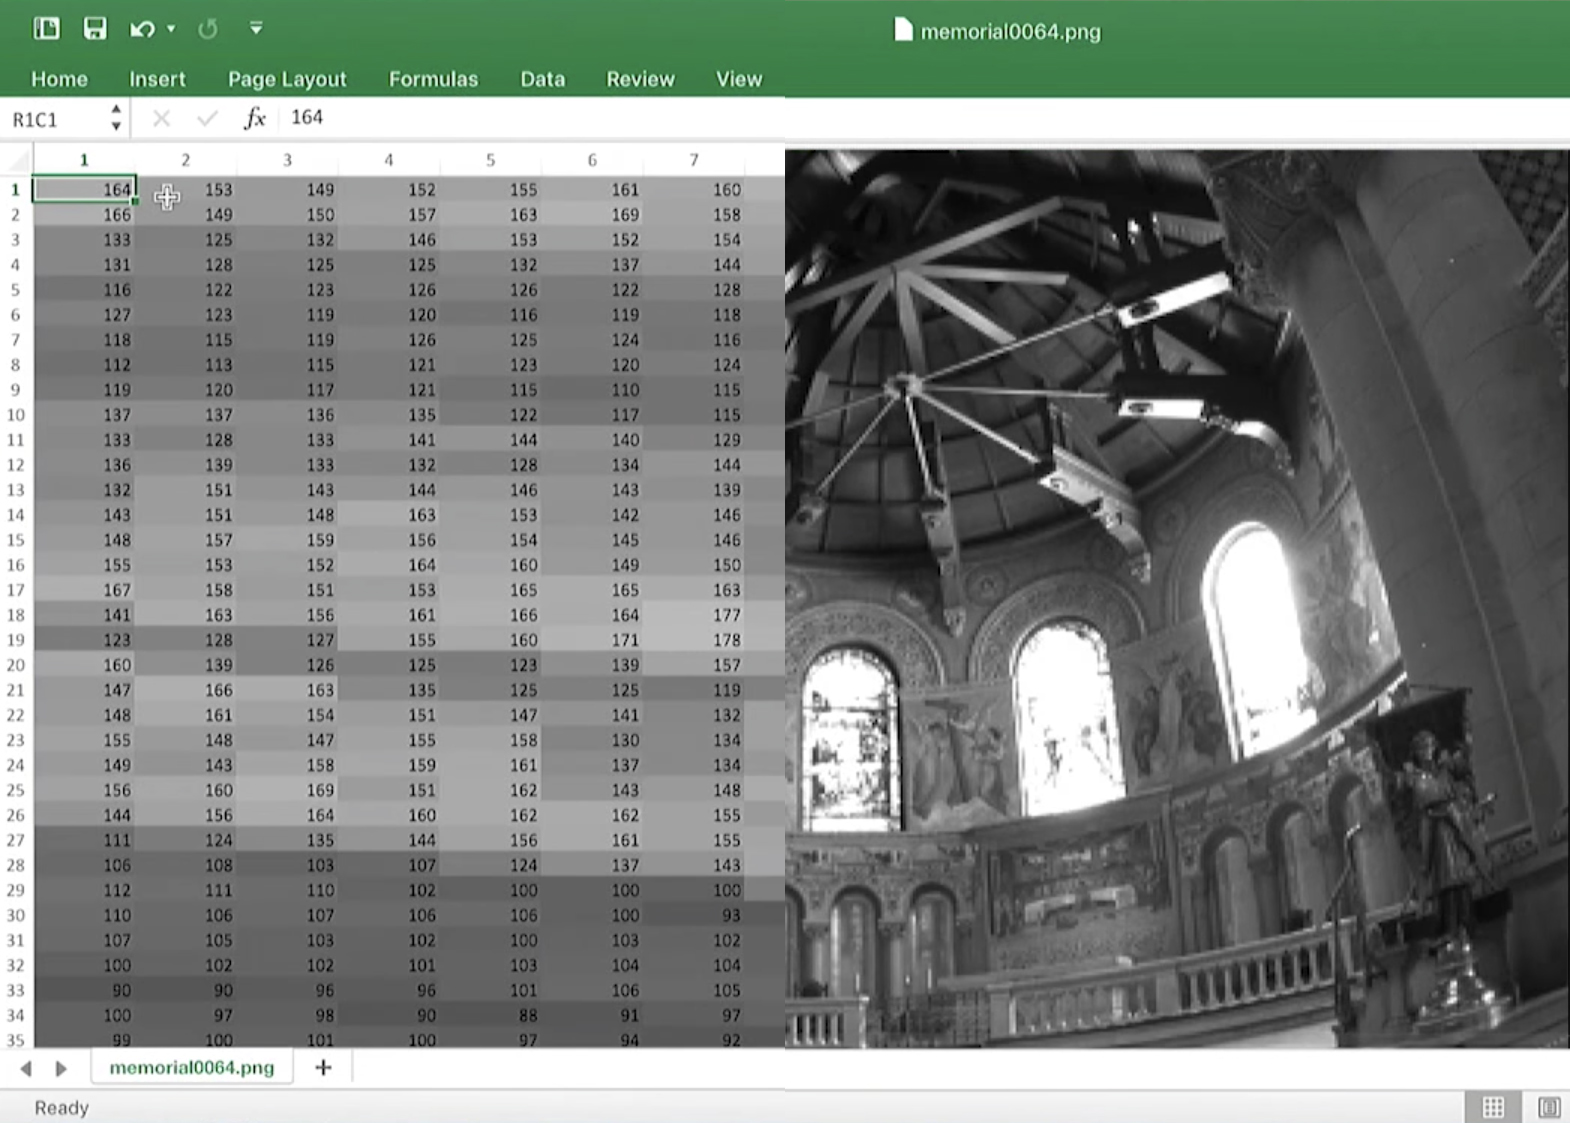 Video: How to make an HDR image using Microsoft Excel